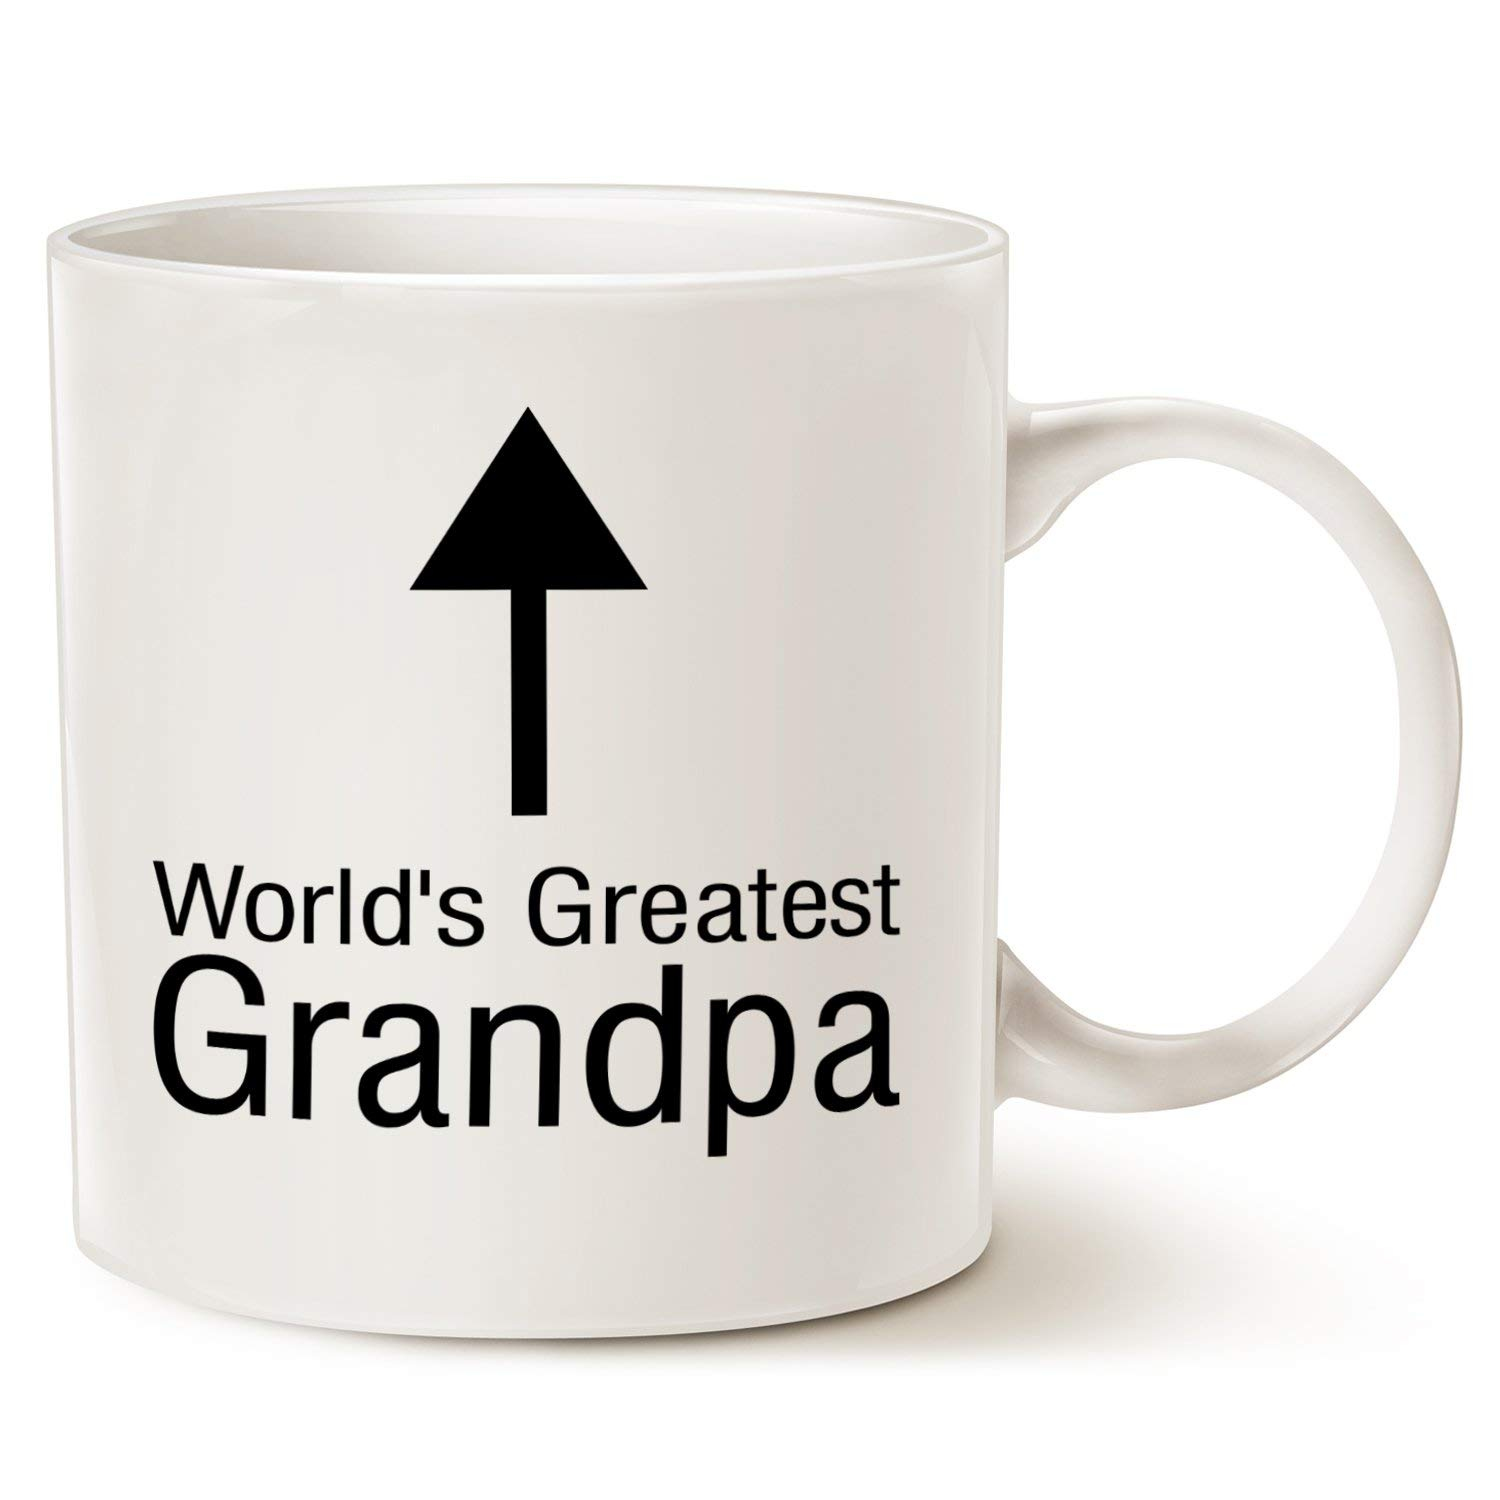 Funny Grandpa Coffee Mug Christmas Gifts Worlds Greatest Arrow Porcelain Cup White Best Birthday